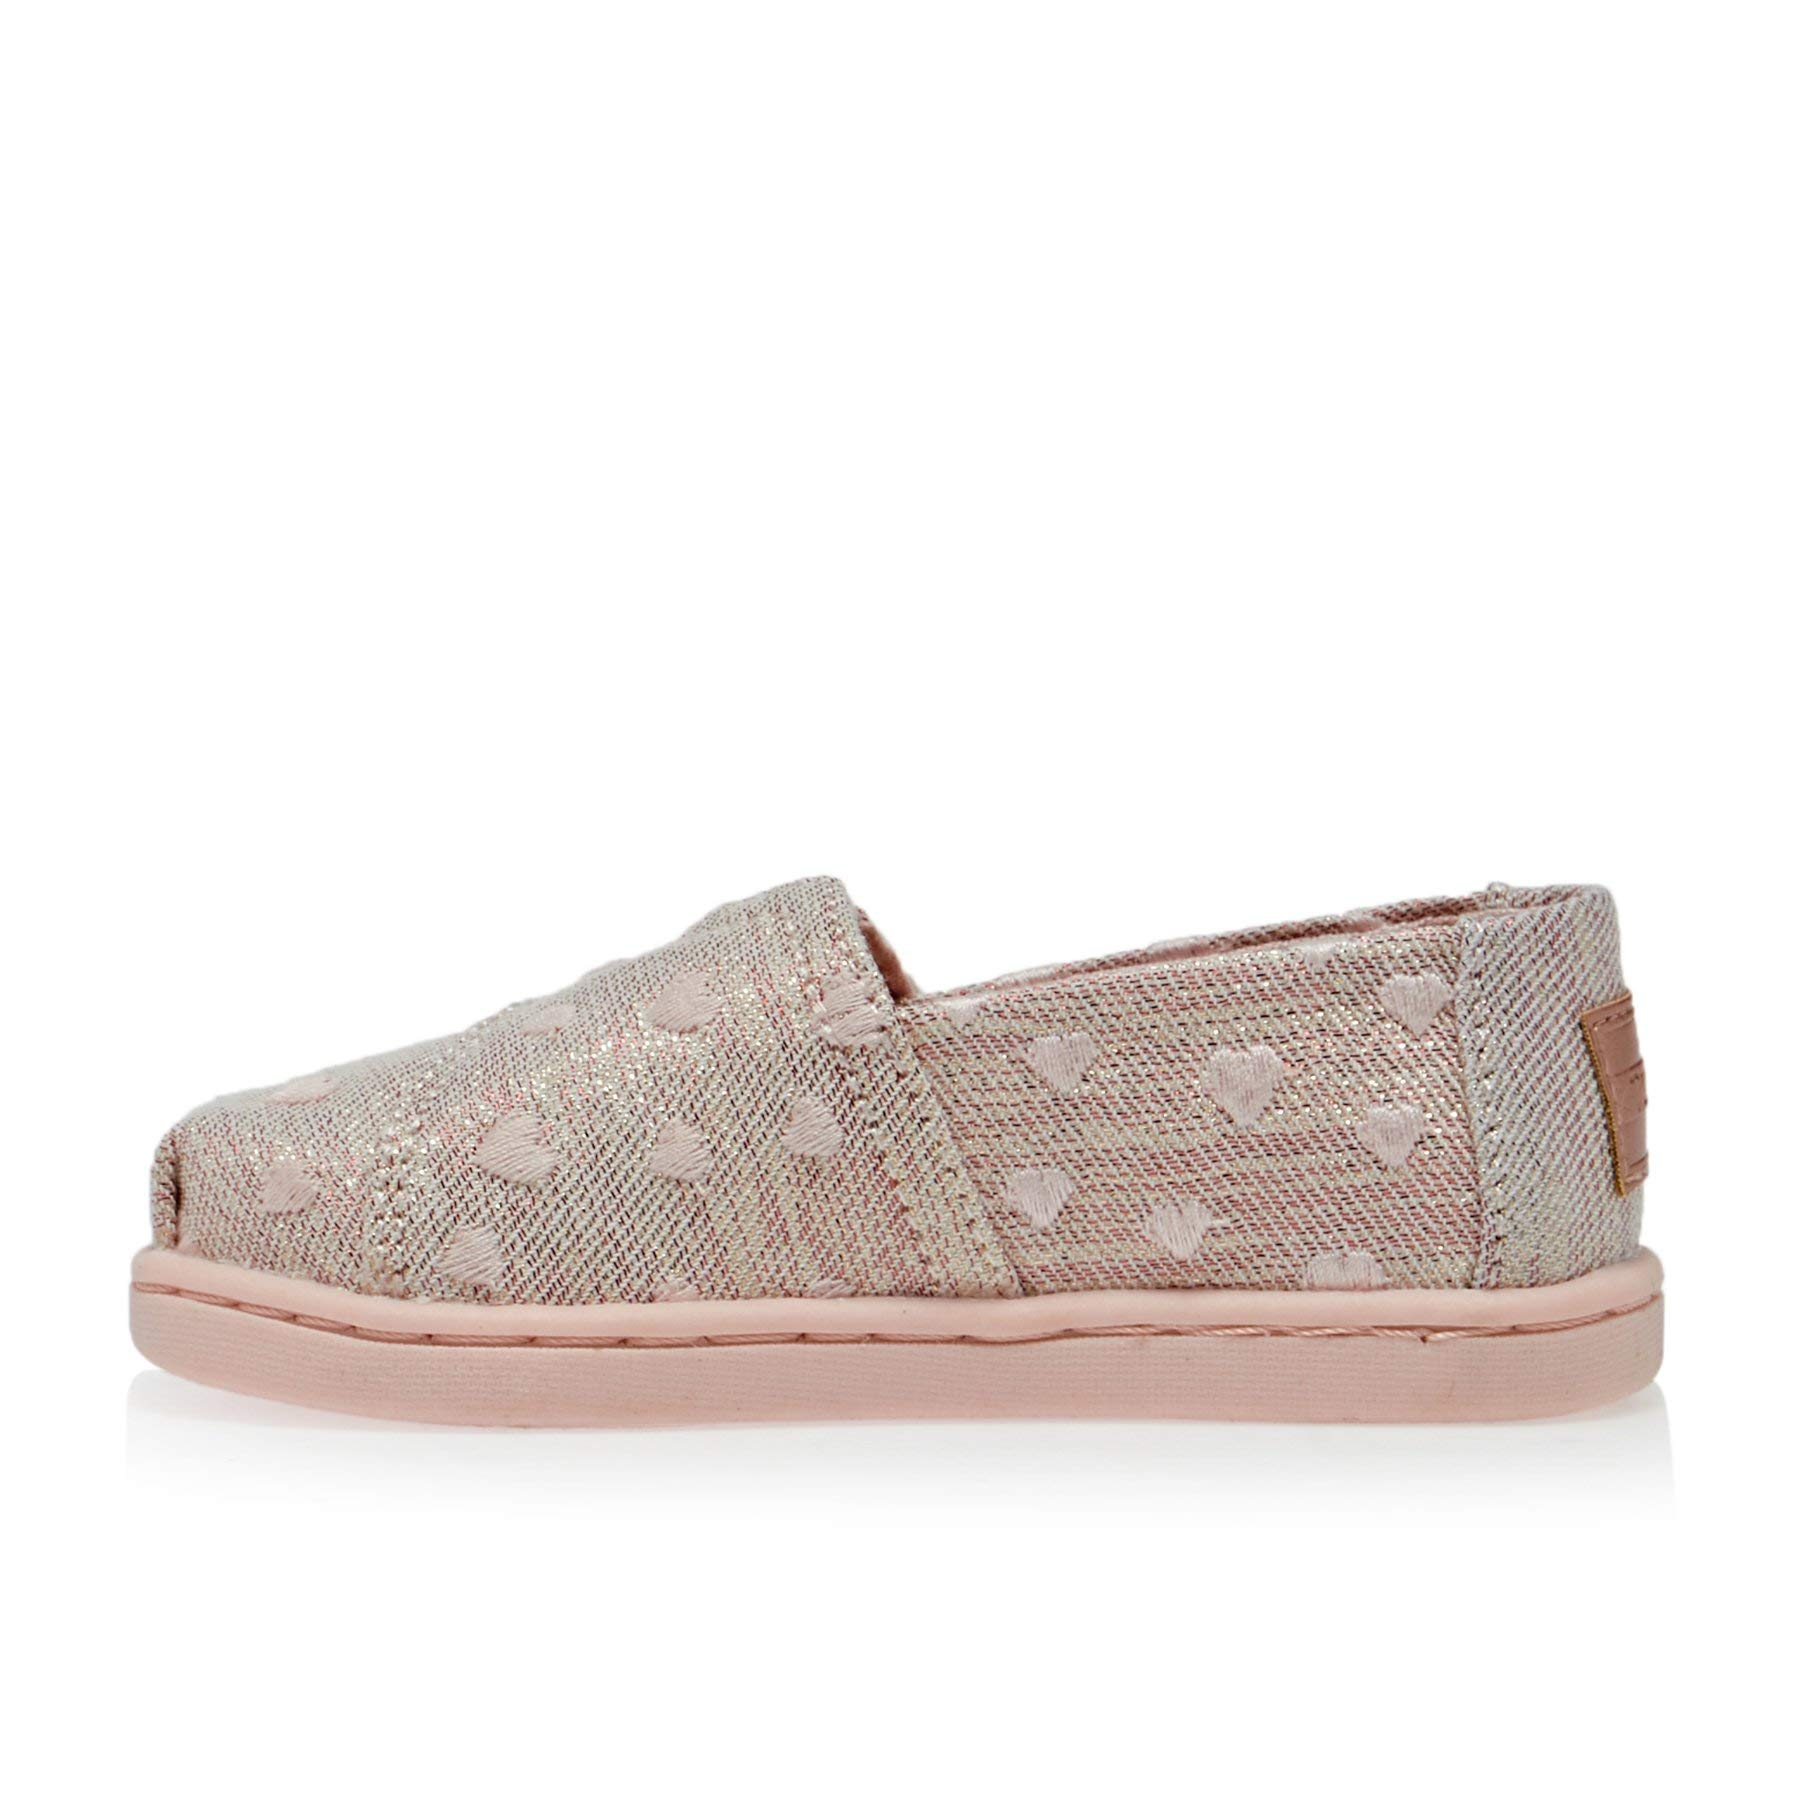 TOMS Kids Baby Girl's Alpargata (Toddler/Little Kid) Rose Cloud Heartsy Twill Glimmer Embroidery 11 M US Little Kid by TOMS Kids (Image #3)